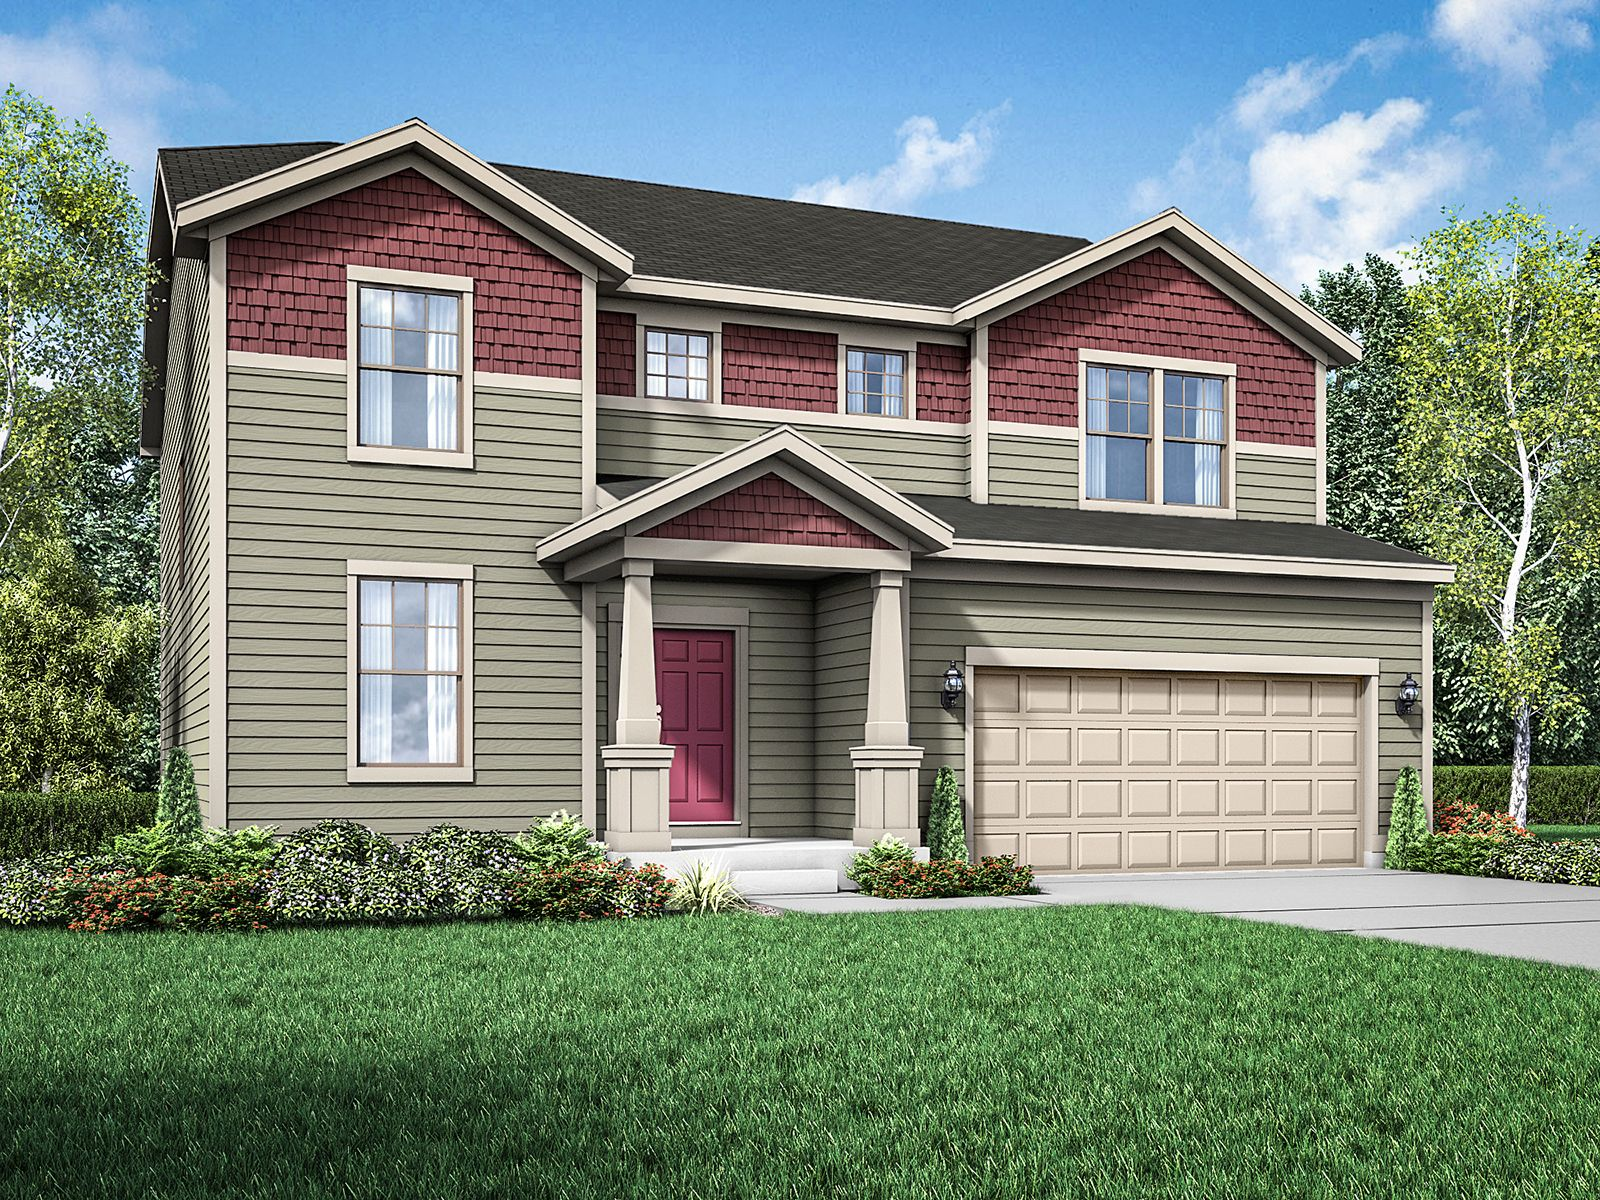 Cottage exterior elevation rendering Sulton by William Ryan Homes:Sulton - Cottage